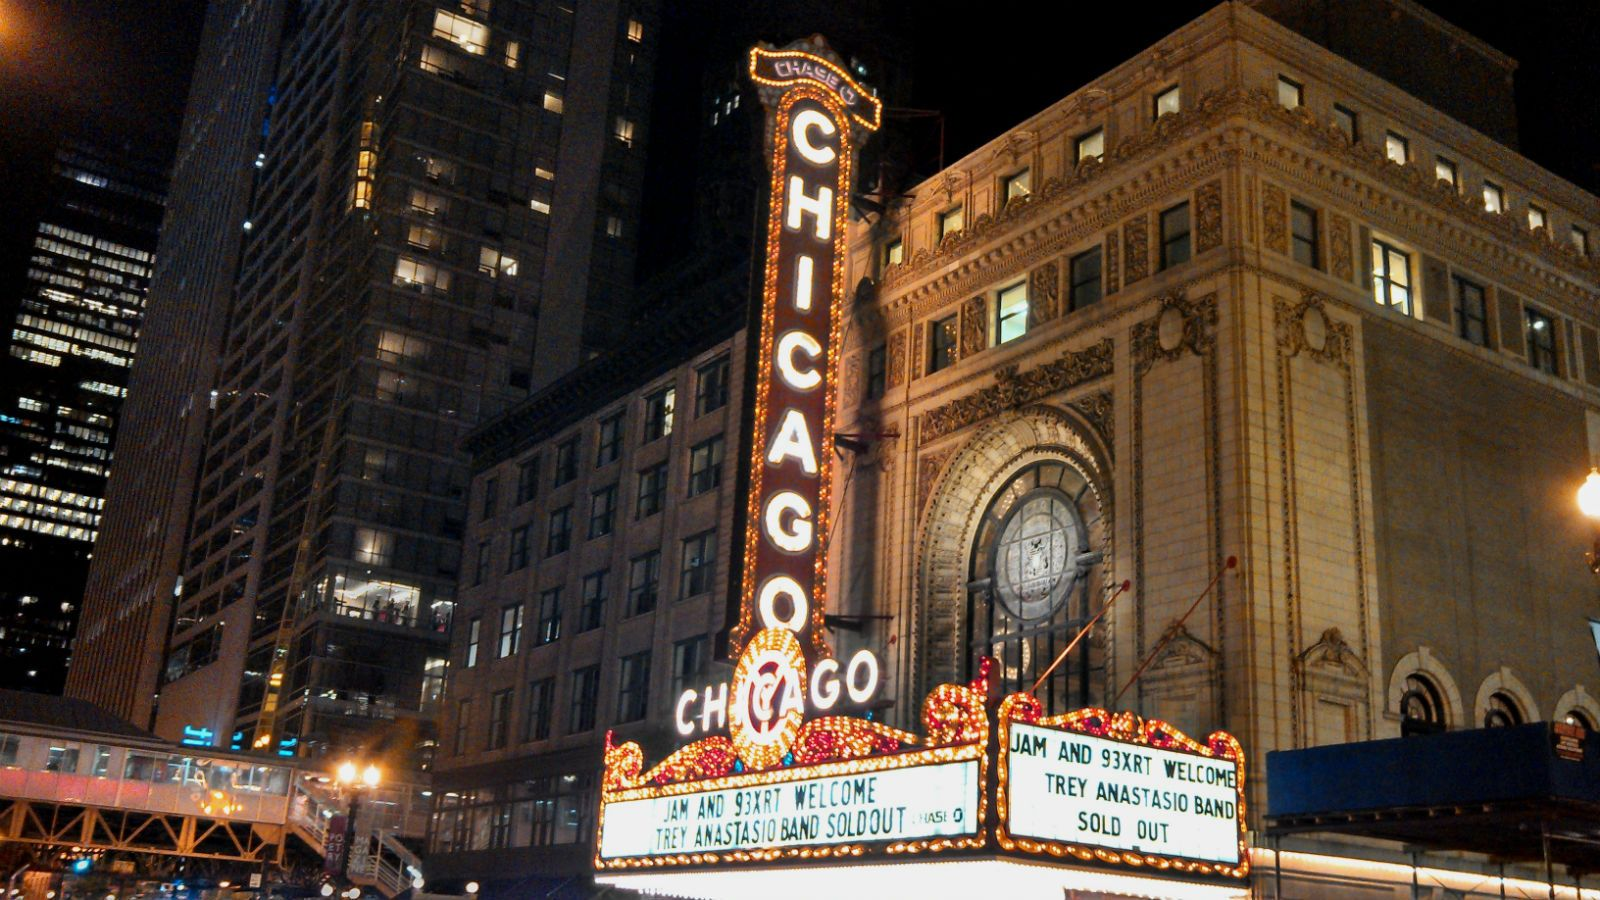 Things to do in Chicago - Chicago Theatre